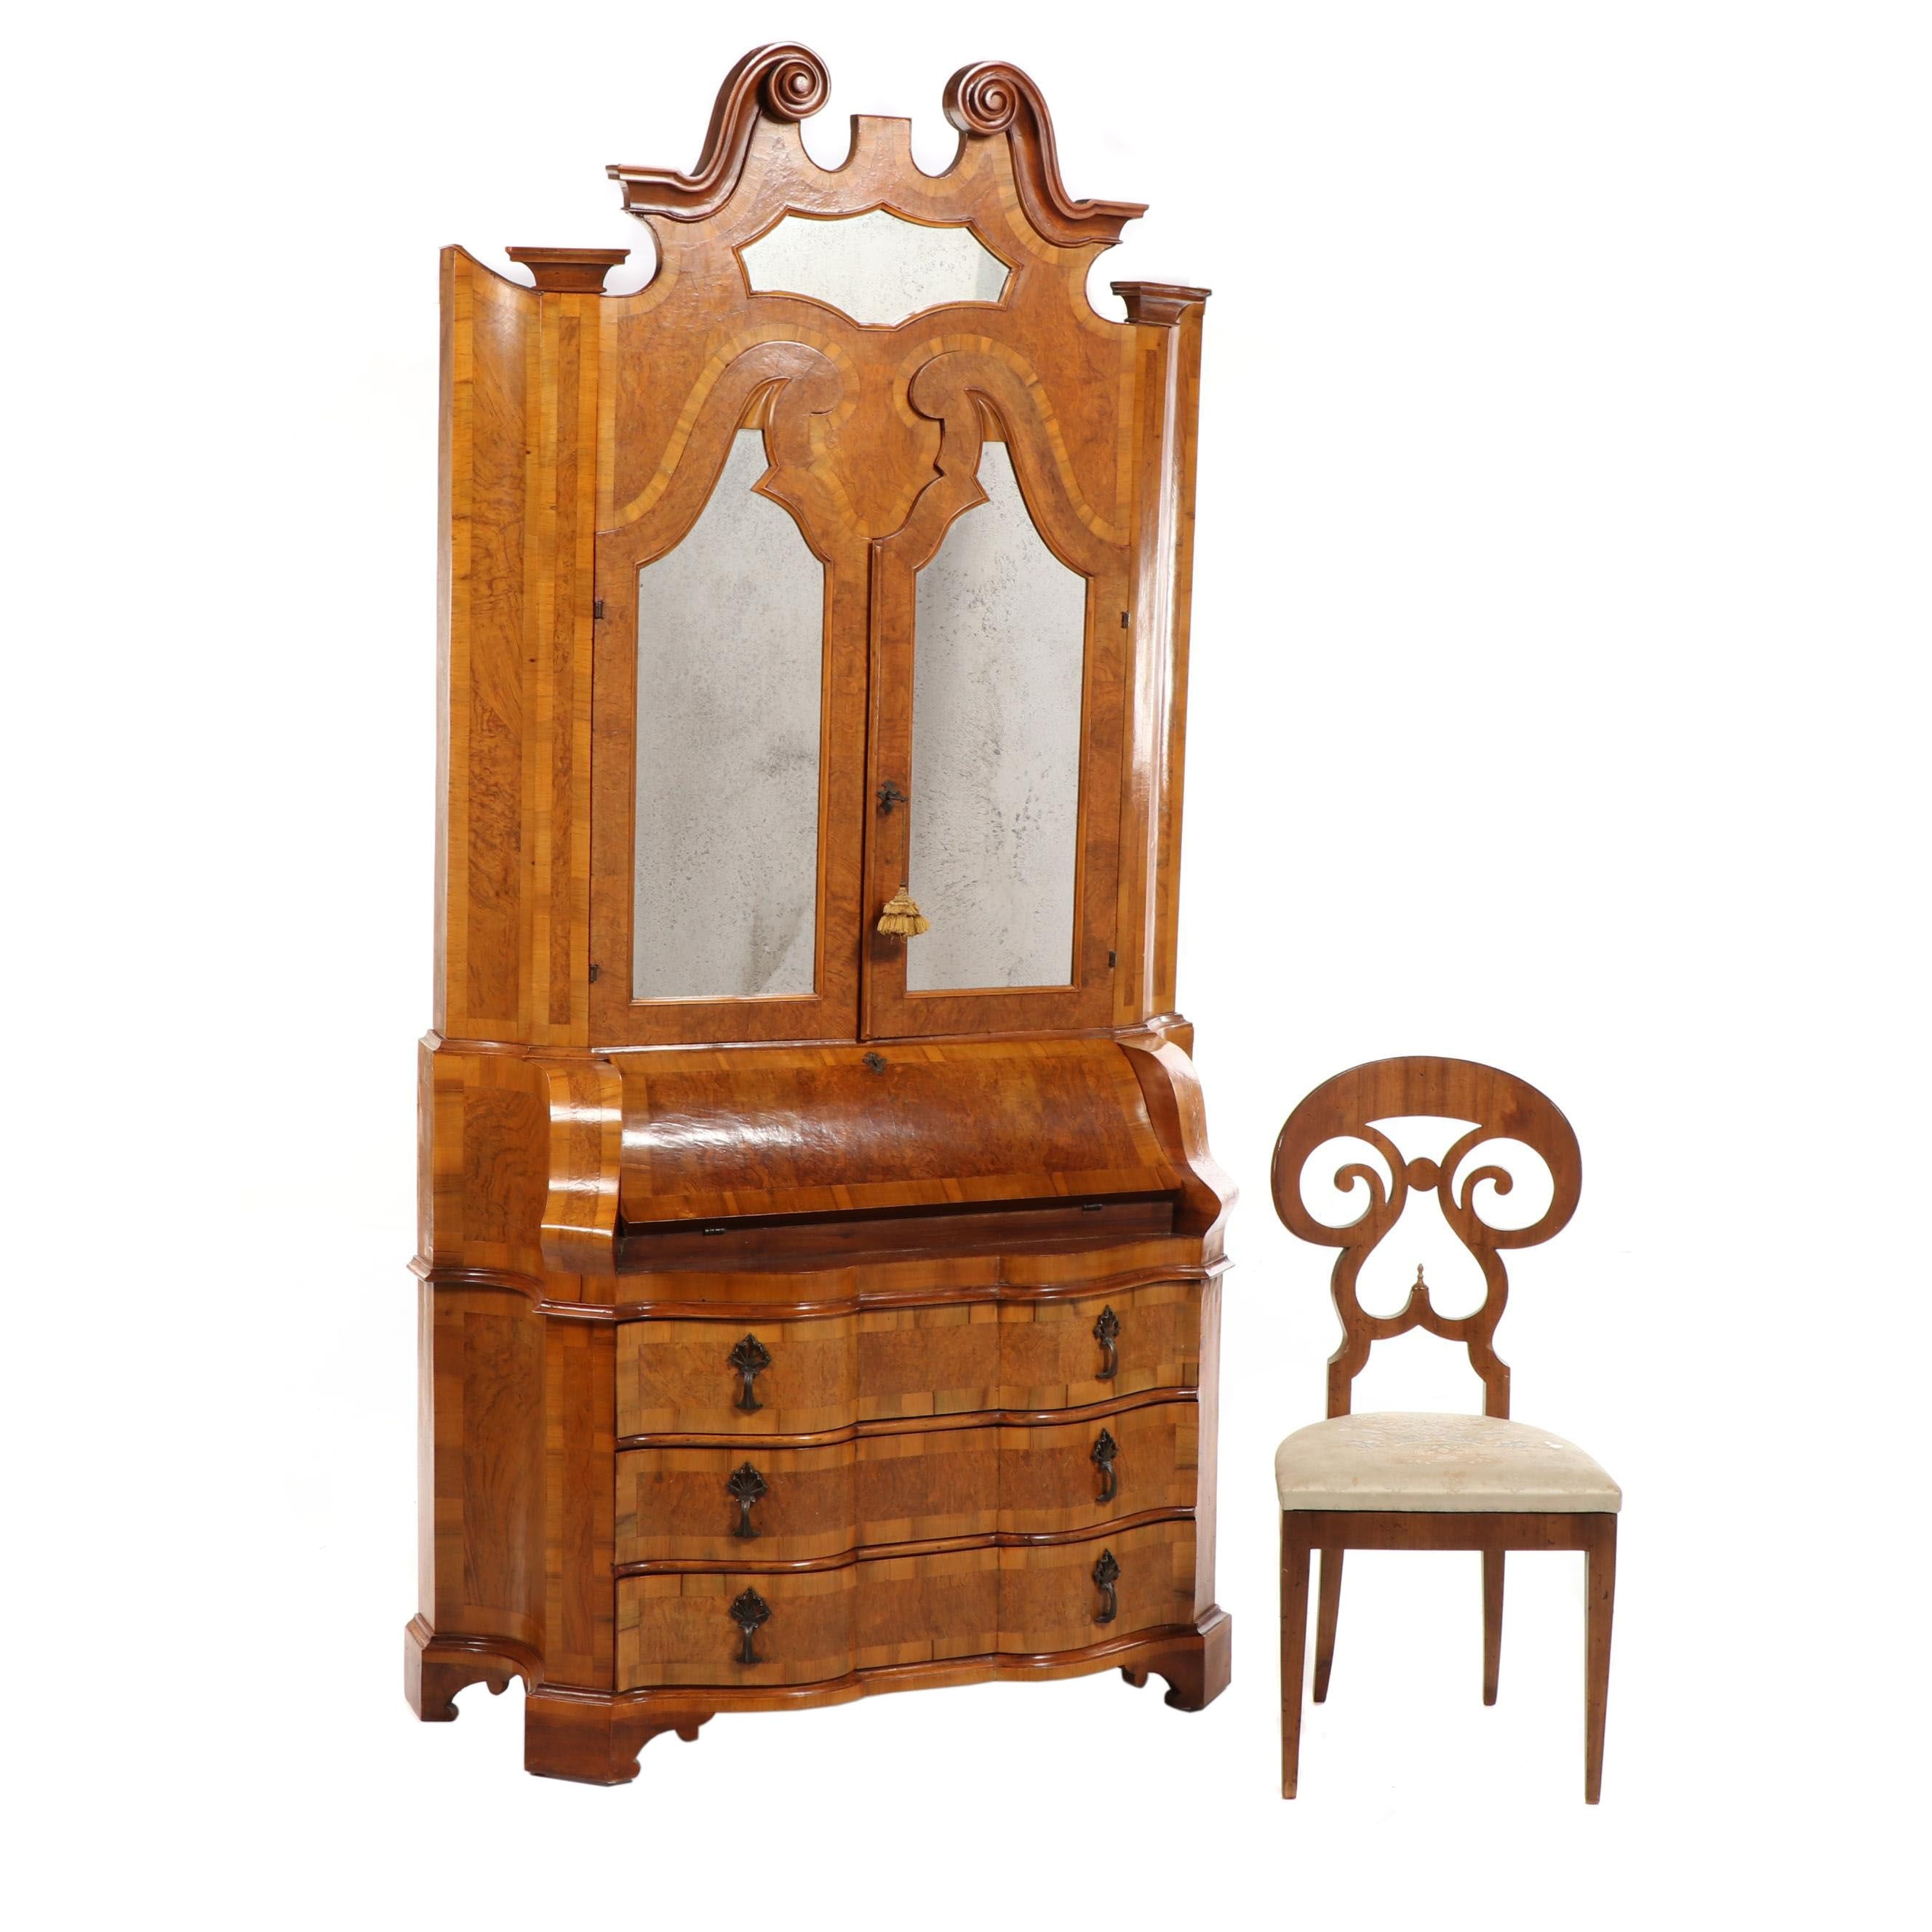 Contemporary Baroque Style Secretary Bookcase and Biedermeier Style Chair